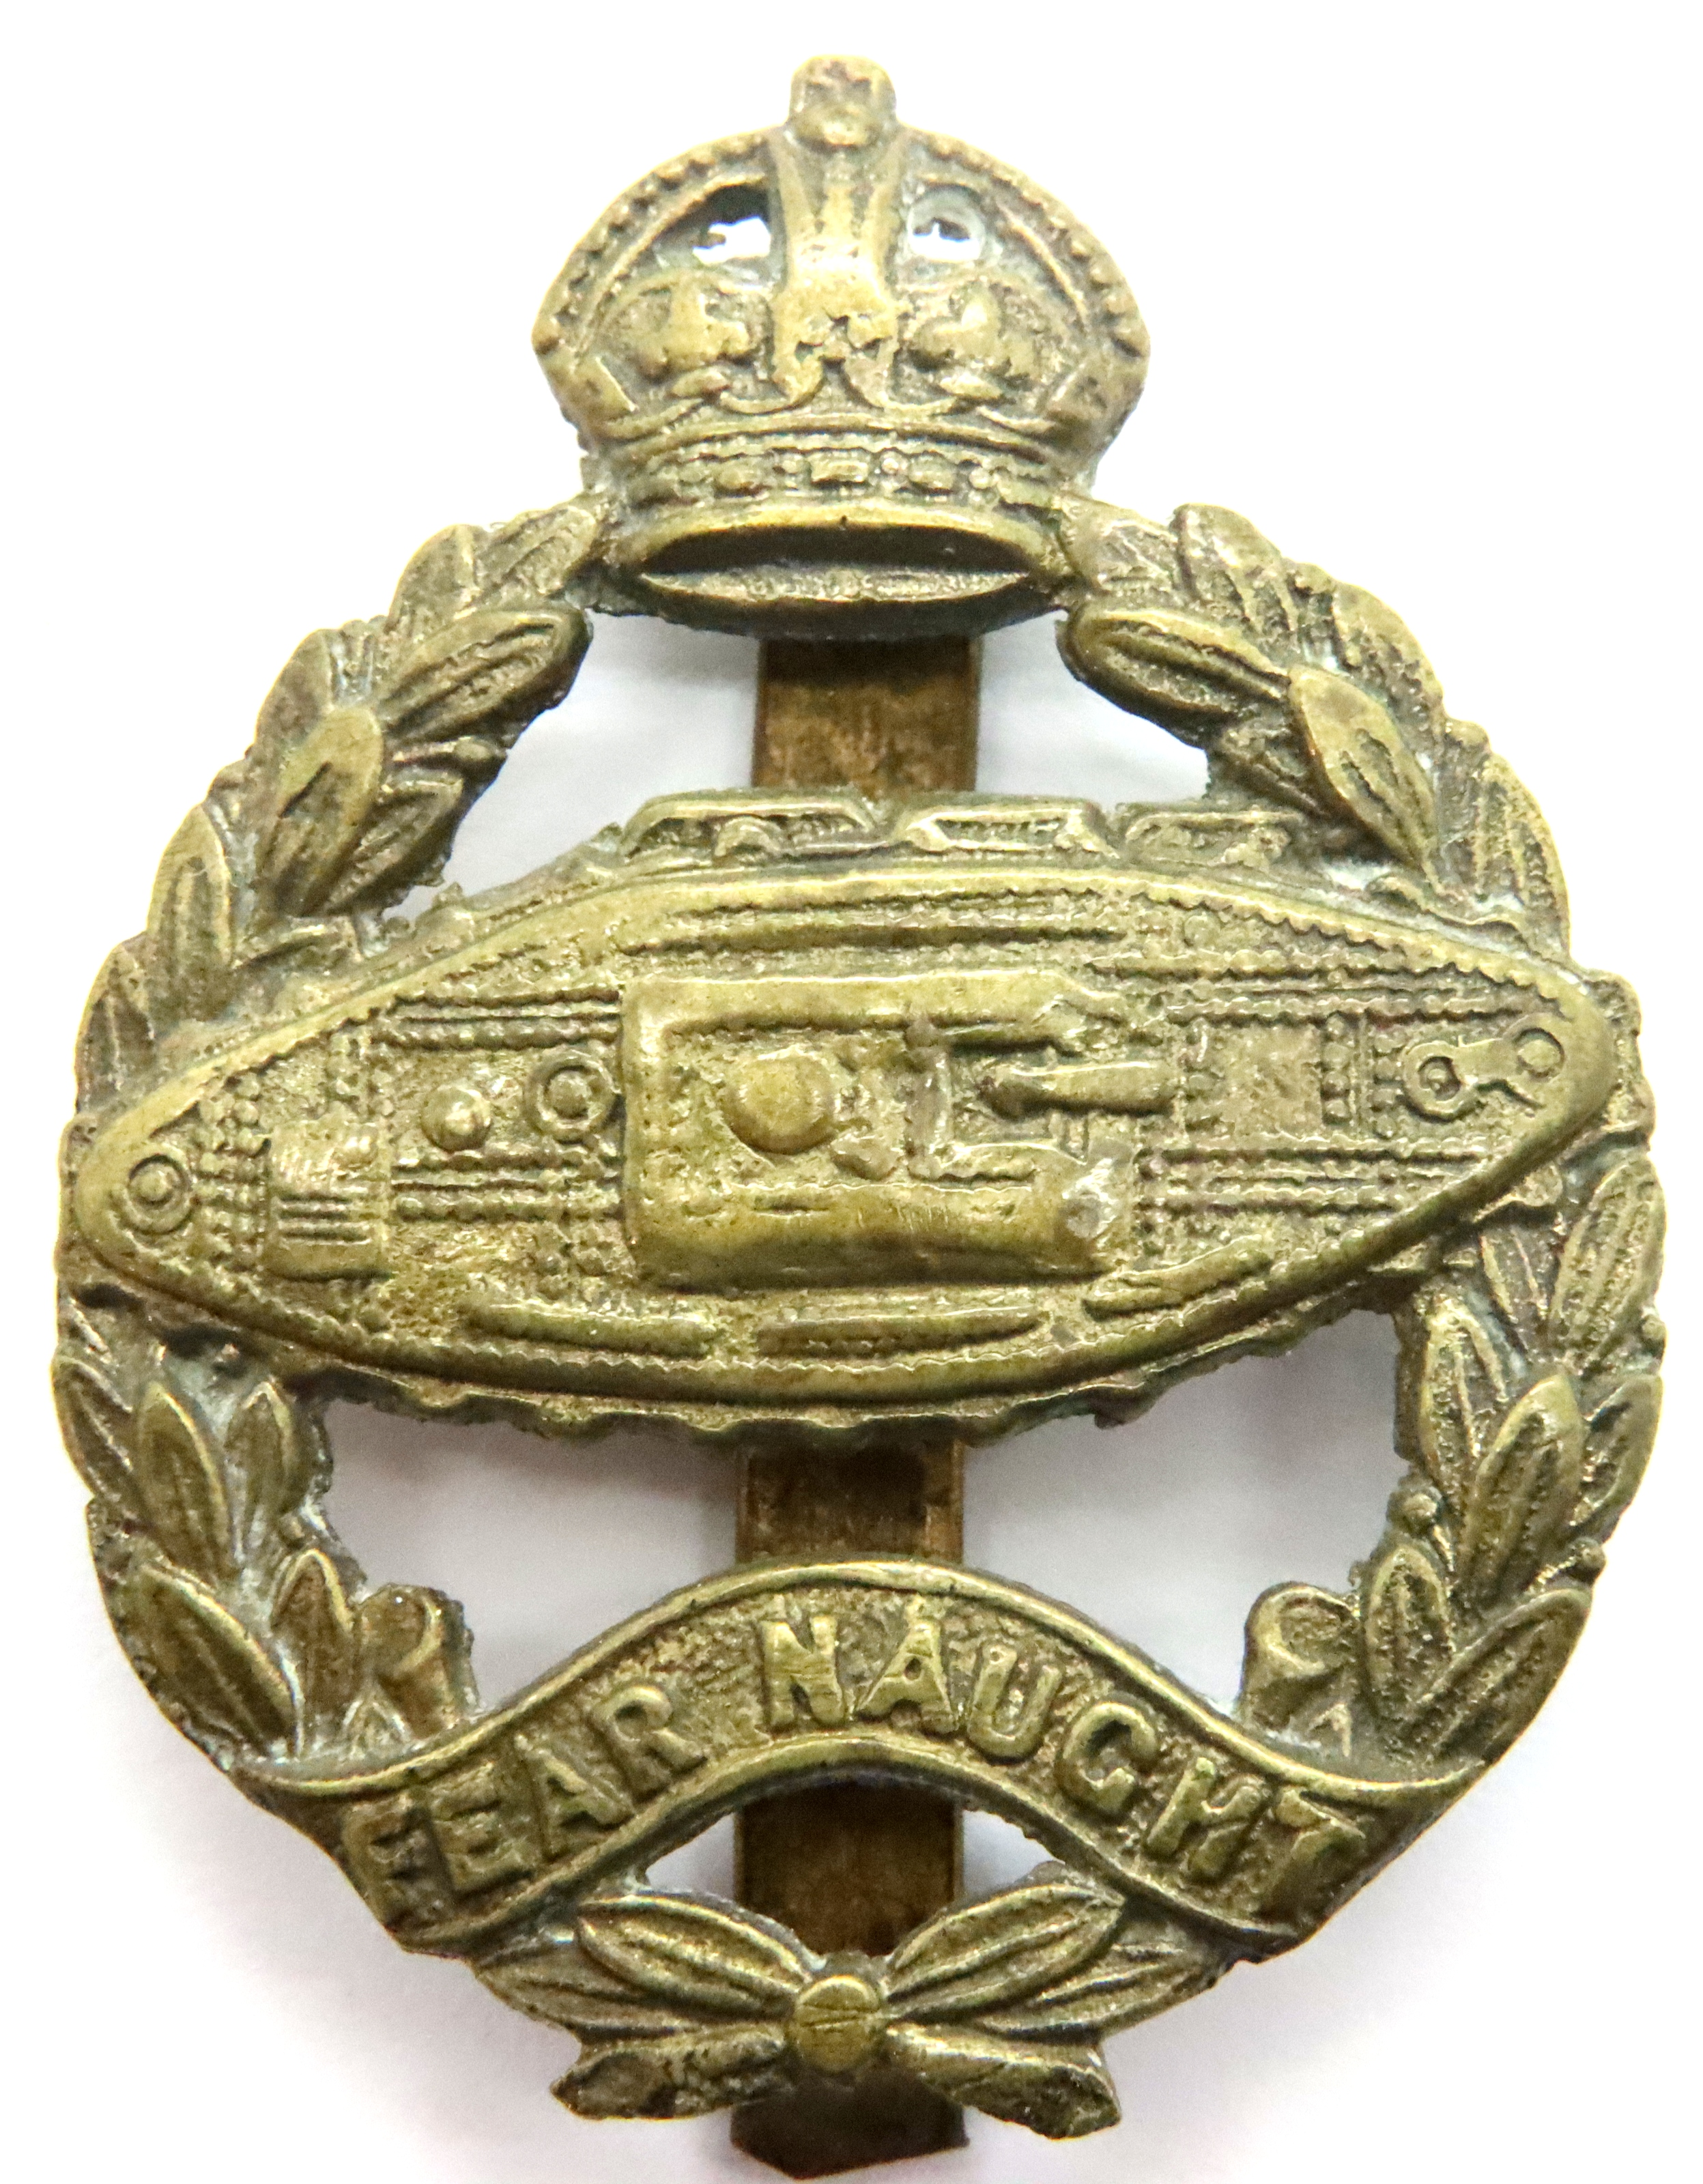 Rare 1924 Issue Royal Tank Regiment Cap Badge. (Tank facing the wrong way) This is the brass variant